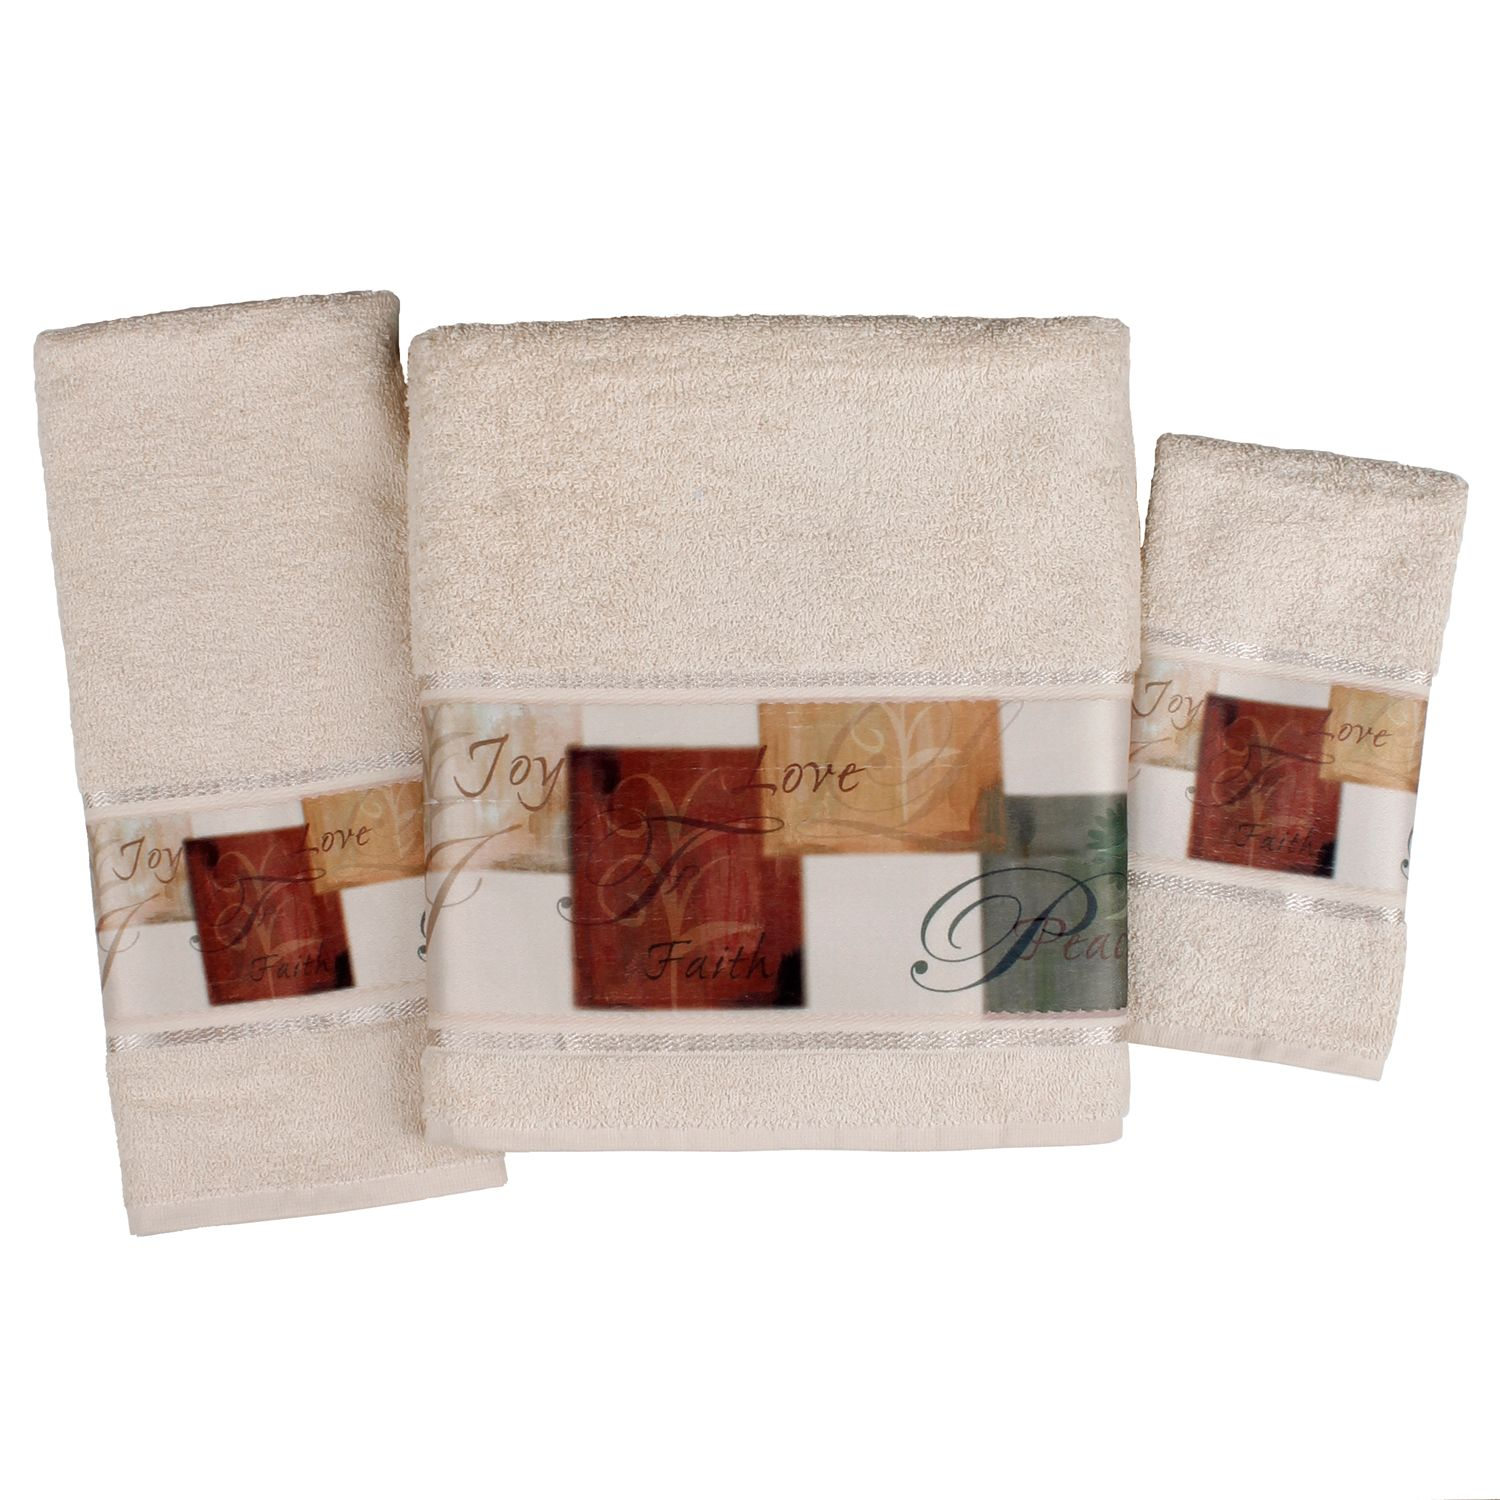 Saturday Knight, Ltd. Tranquility Bath Towel Collection